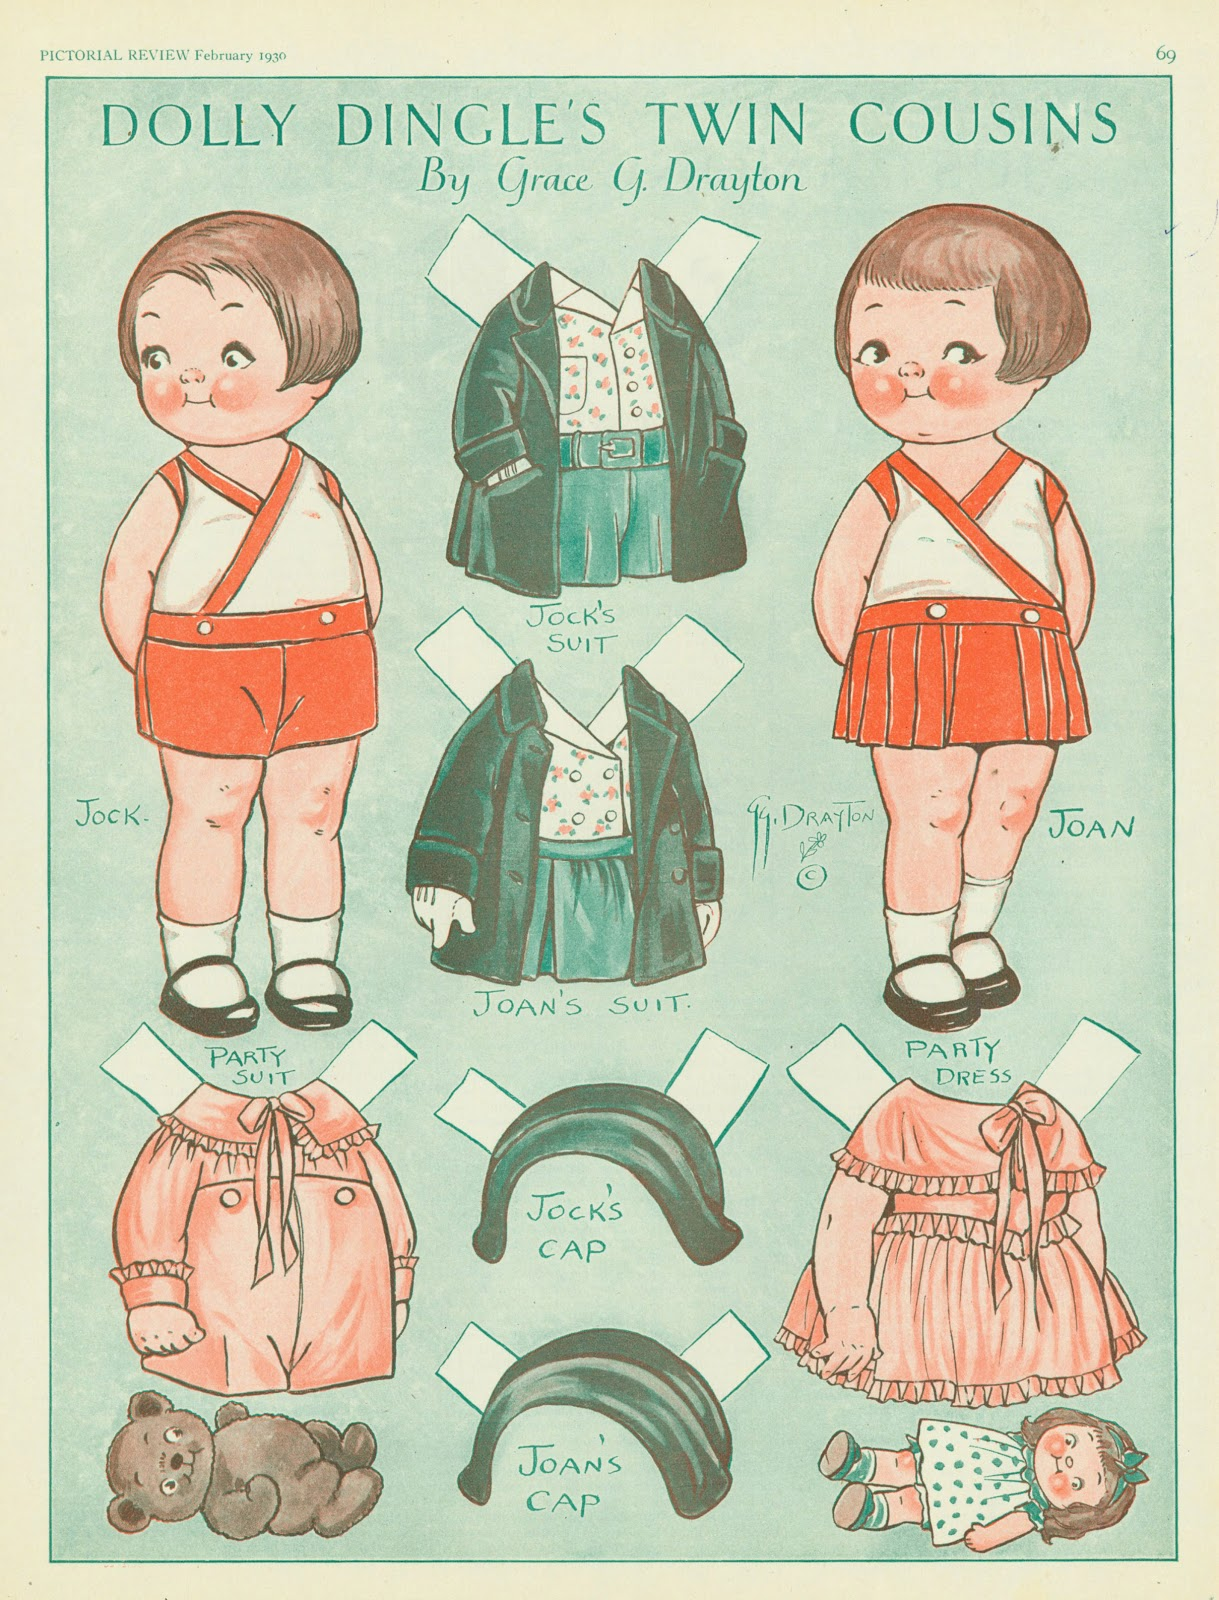 """Grace Drayton,  Dolly Dingle Paper Dolls with Outfits . 1930. Grace ( profiled here  on my Illustration History blog) was one of the creators of characters associated with products and what would become known as """"brands."""" Starting in comics at the Philadelphia Press, in 1905 she created """"The Campbell's Soup Kids"""" who bore a powerful resemblance to characters she created for the rest of her career. She produced these Dolly Dingle paper-cutouts for Pictorial Review as a running gig. Her """"kids"""" were of the same generation of Pretz' Billken."""